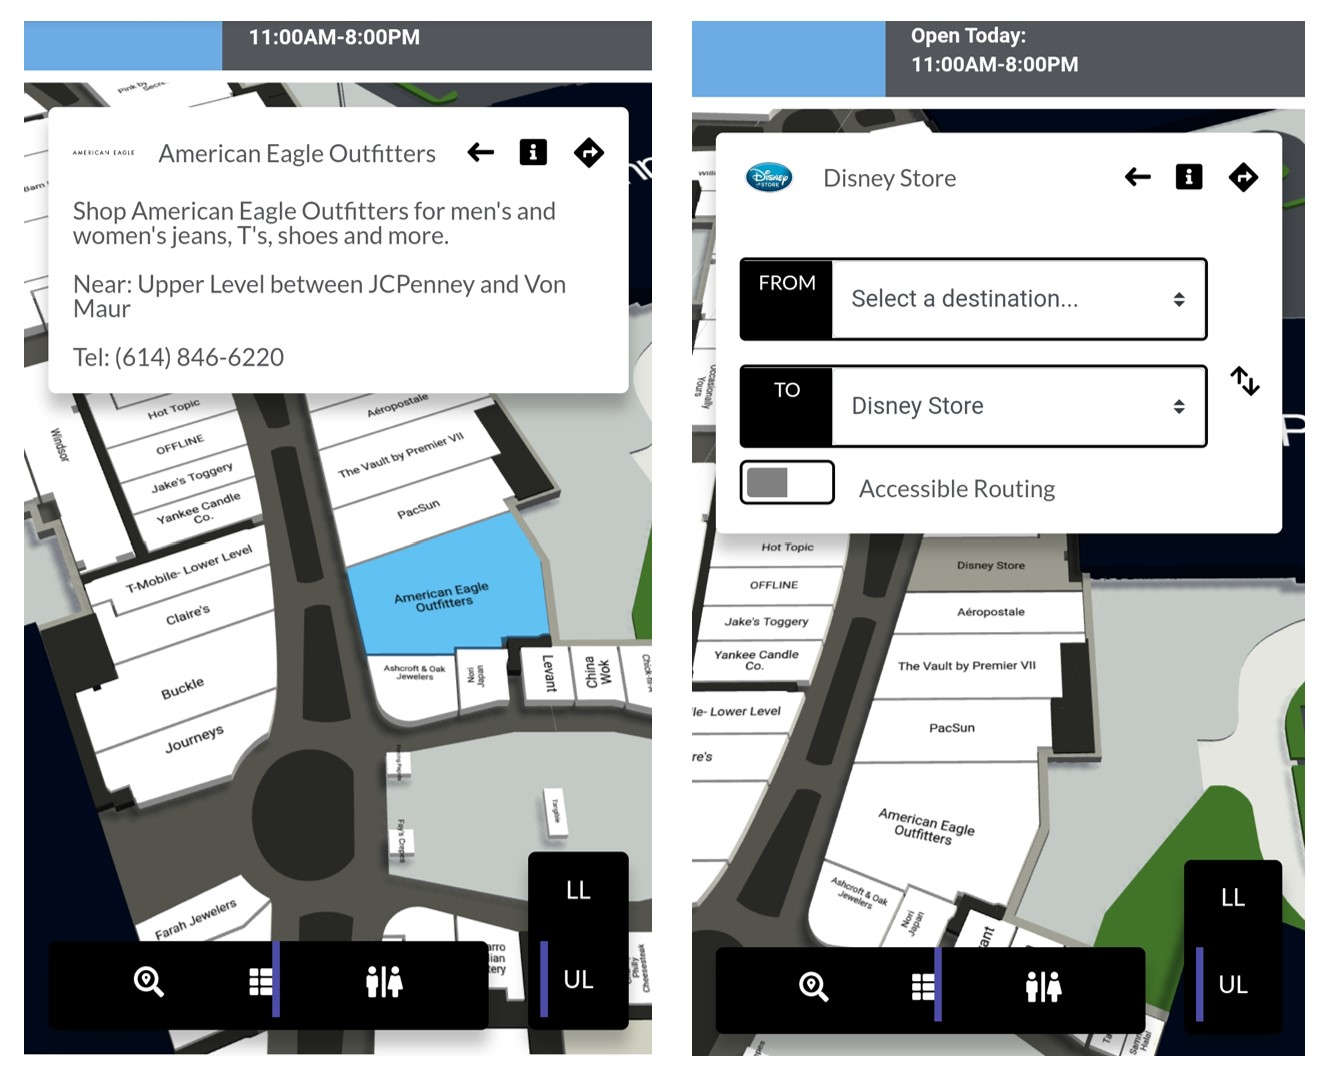 Mobile venue wayfinding and mapping software